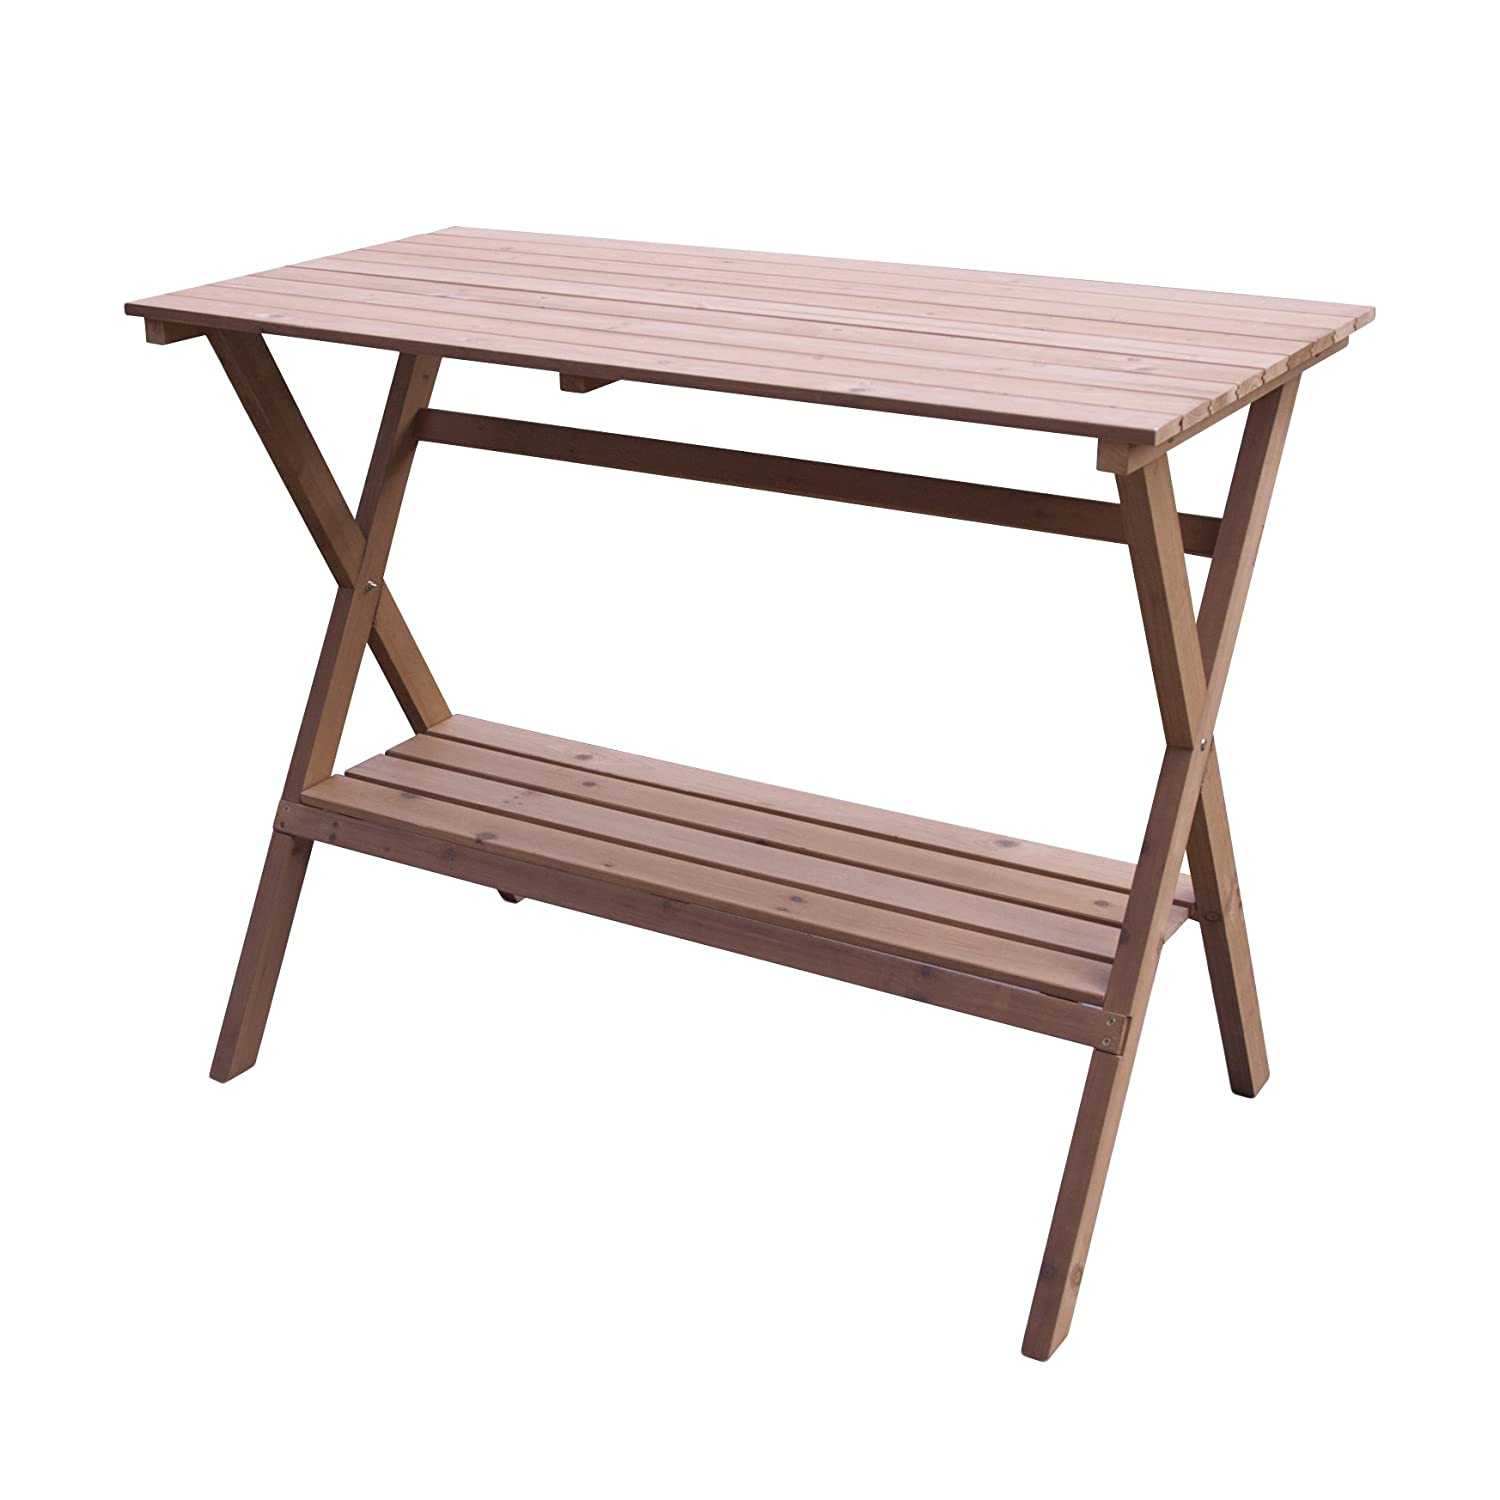 Merry Garden MPG‐PB05 Simple Potting Bench and Console Table MPG-PB05